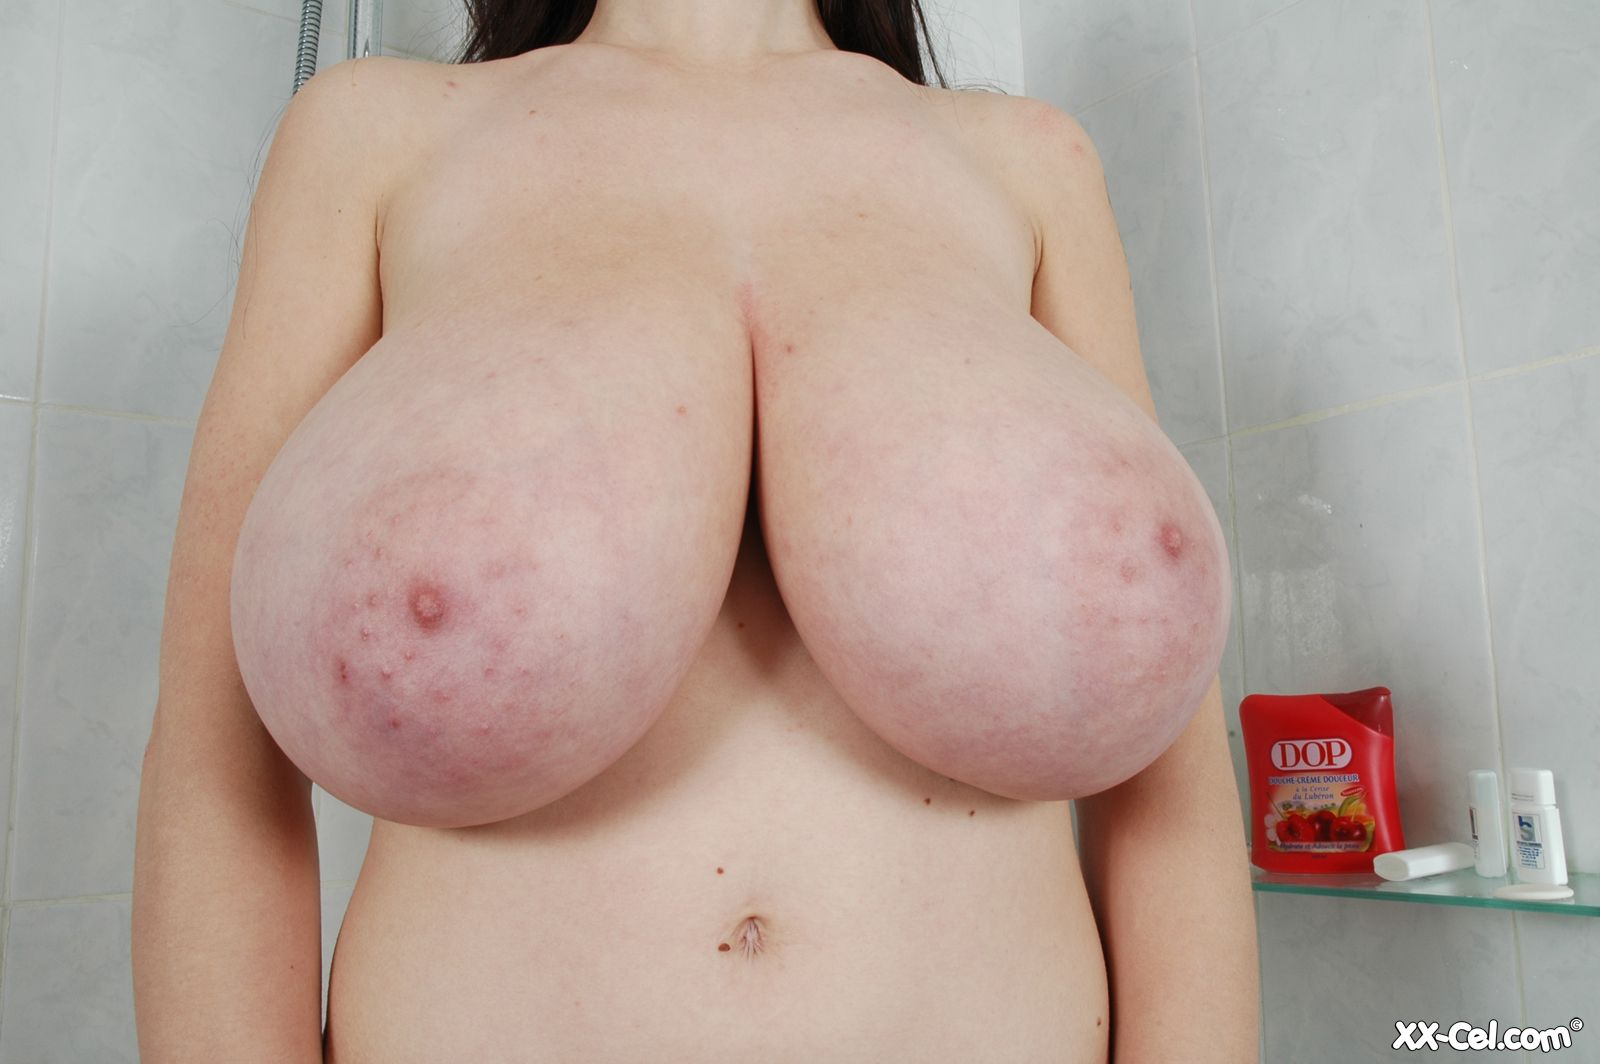 Charming princess with glorious forms show up spectacular boobies